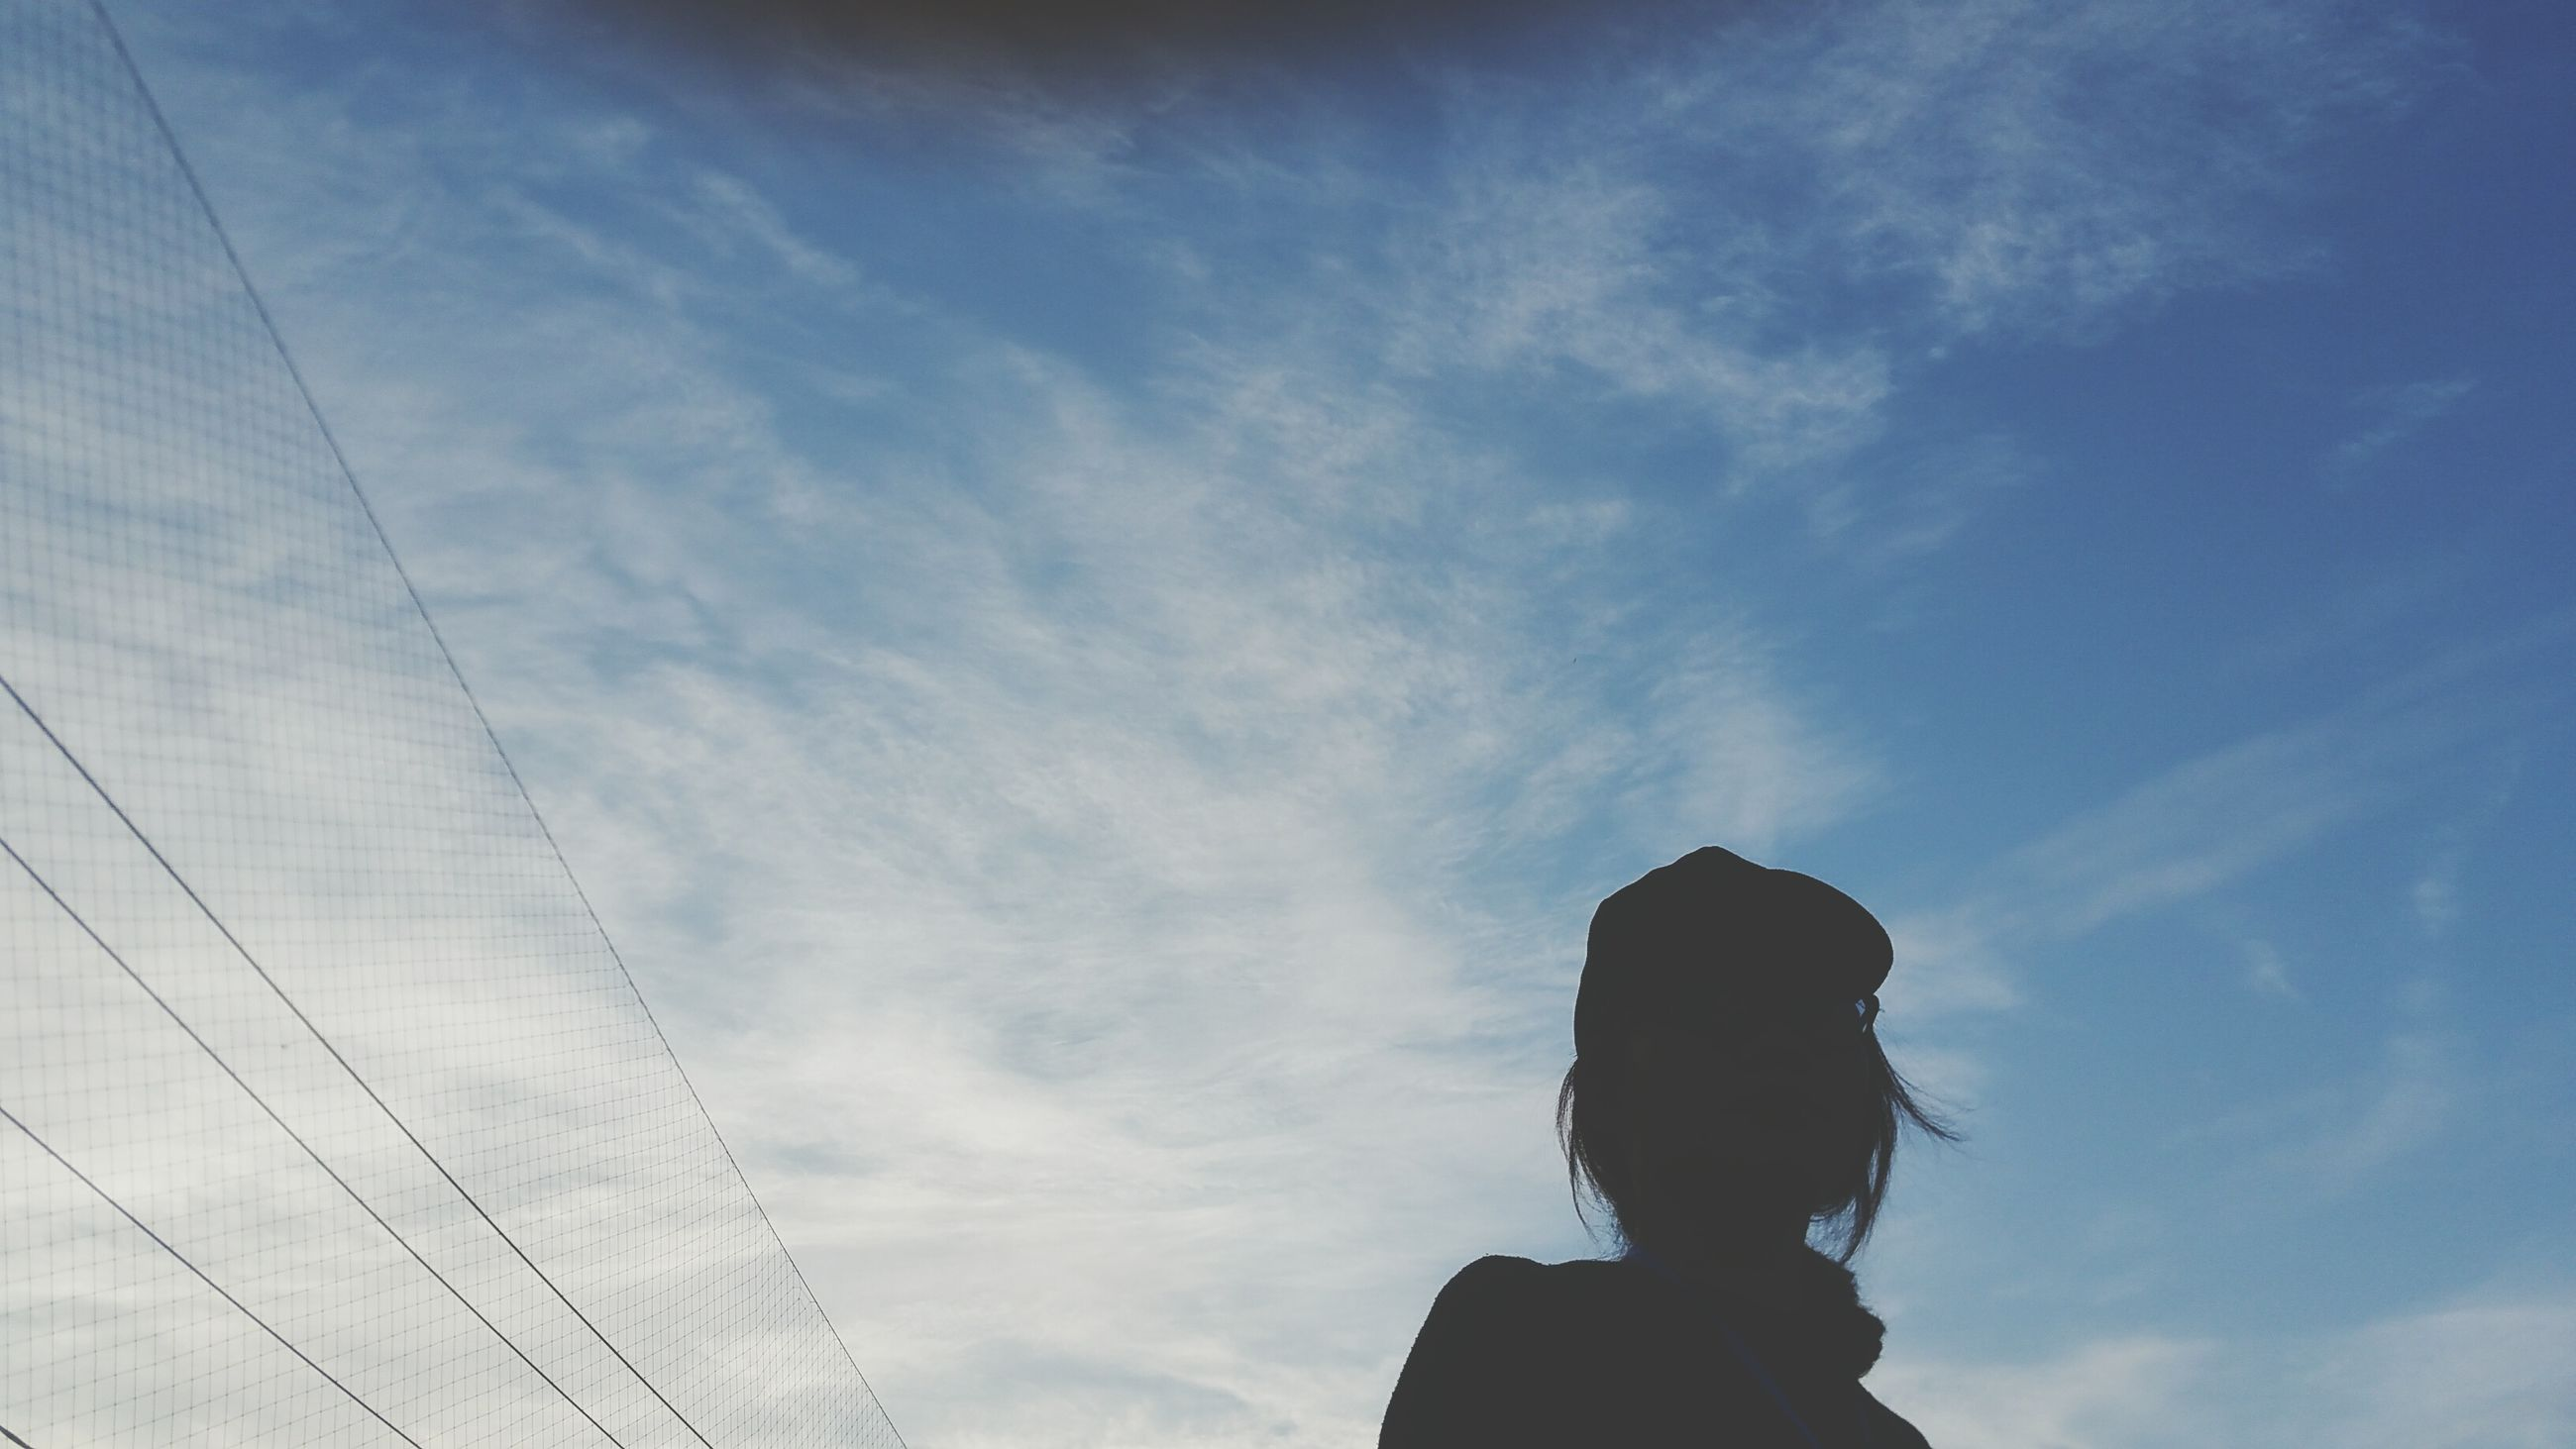 sky, cloud - sky, one person, low angle view, real people, day, people, outdoors, adults only, adult